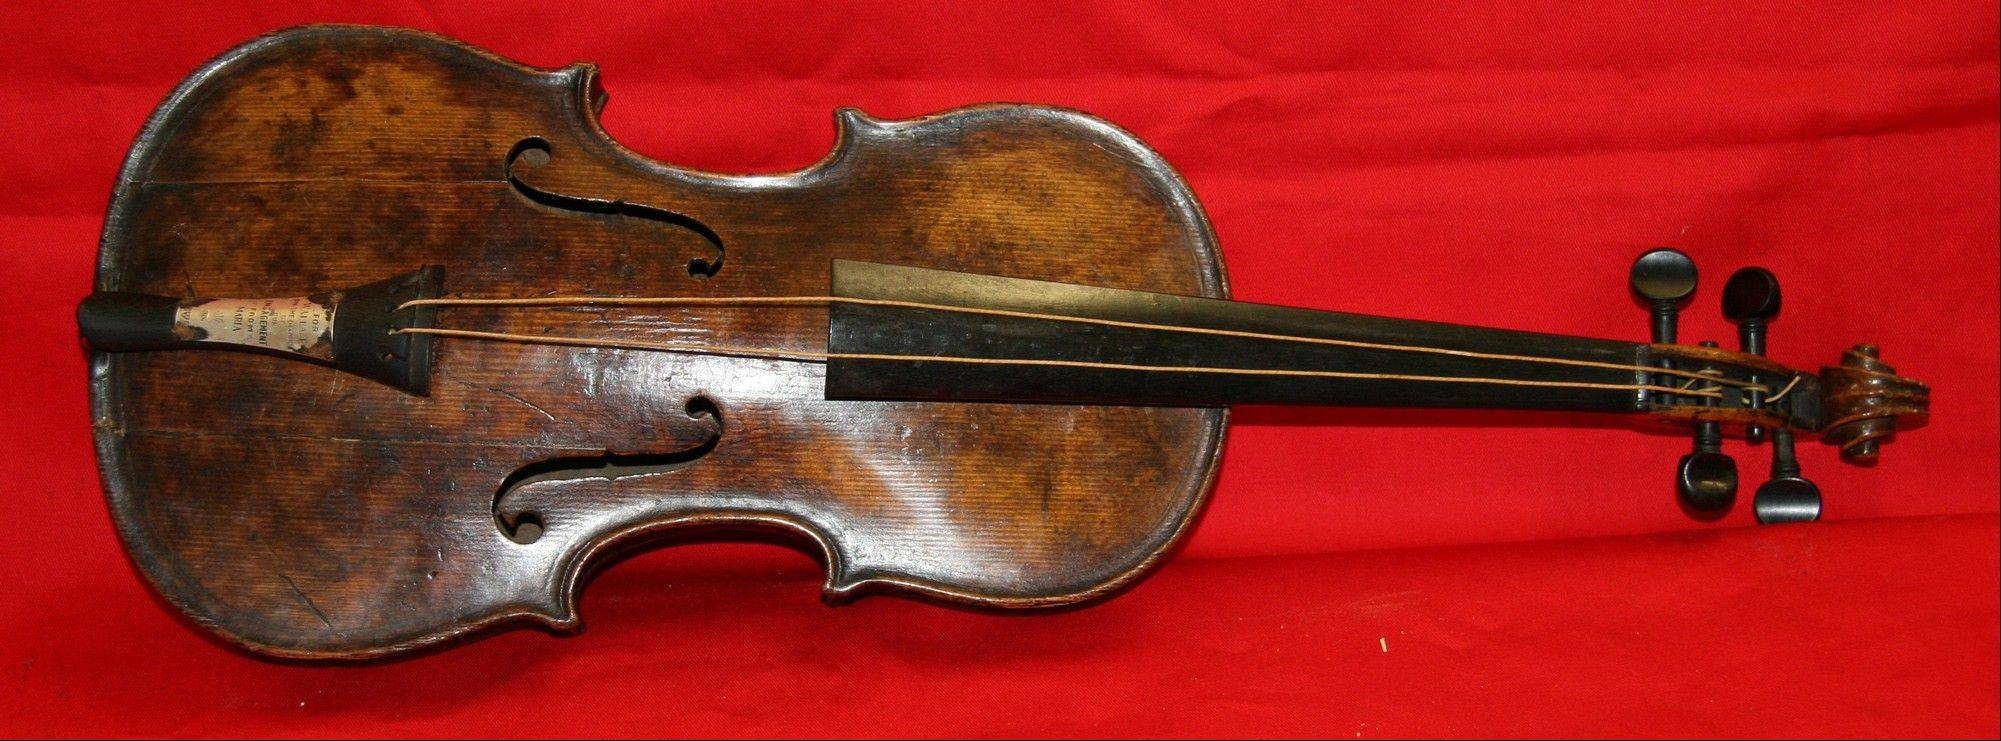 Auctioneers Henry Aldridge & Son say an instrument unearthed in 2006 has undergone rigorous testing and has proved to be the violin that was played by the bandmaster of the Titanic as the oceanliner sank. The auction house said has spent the past seven years and thousands of pounds determining the water-stained violin�s origins, consulting numerous experts including government forensic scientists and Oxford University.